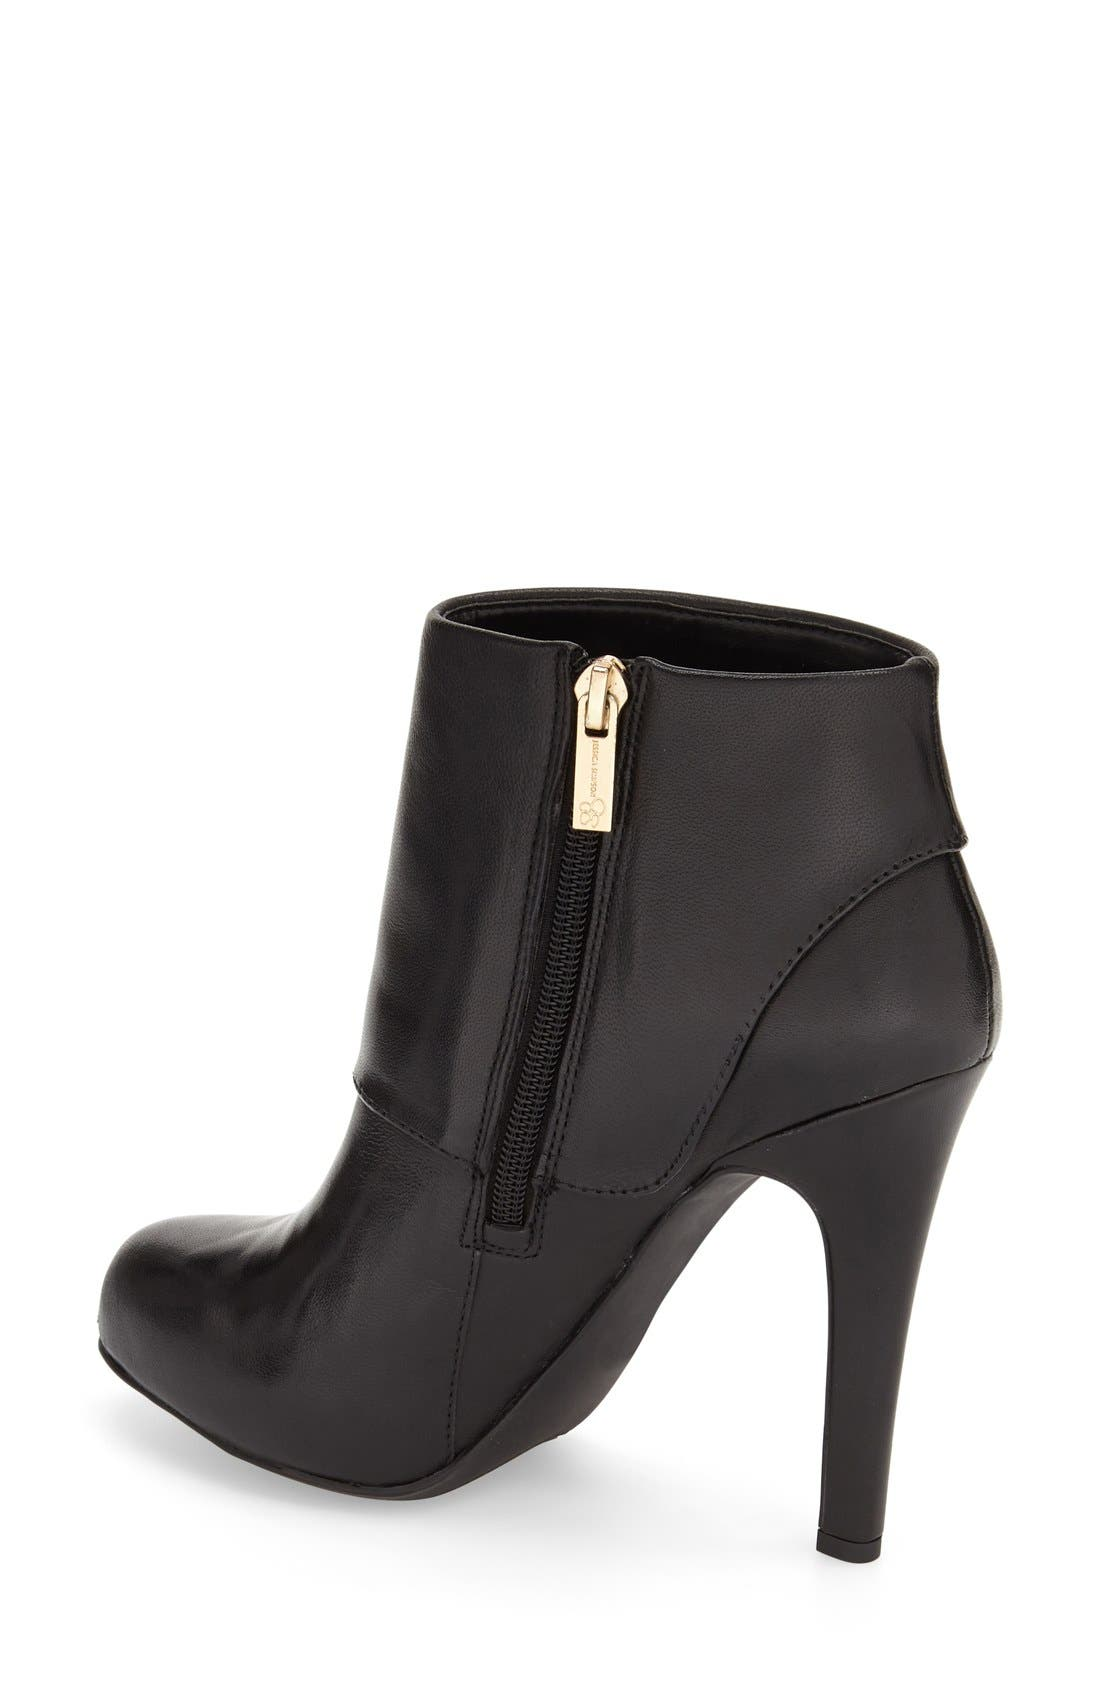 Alternate Image 2  - Jessica Simpson 'Addey' Platform Bootie (Women)